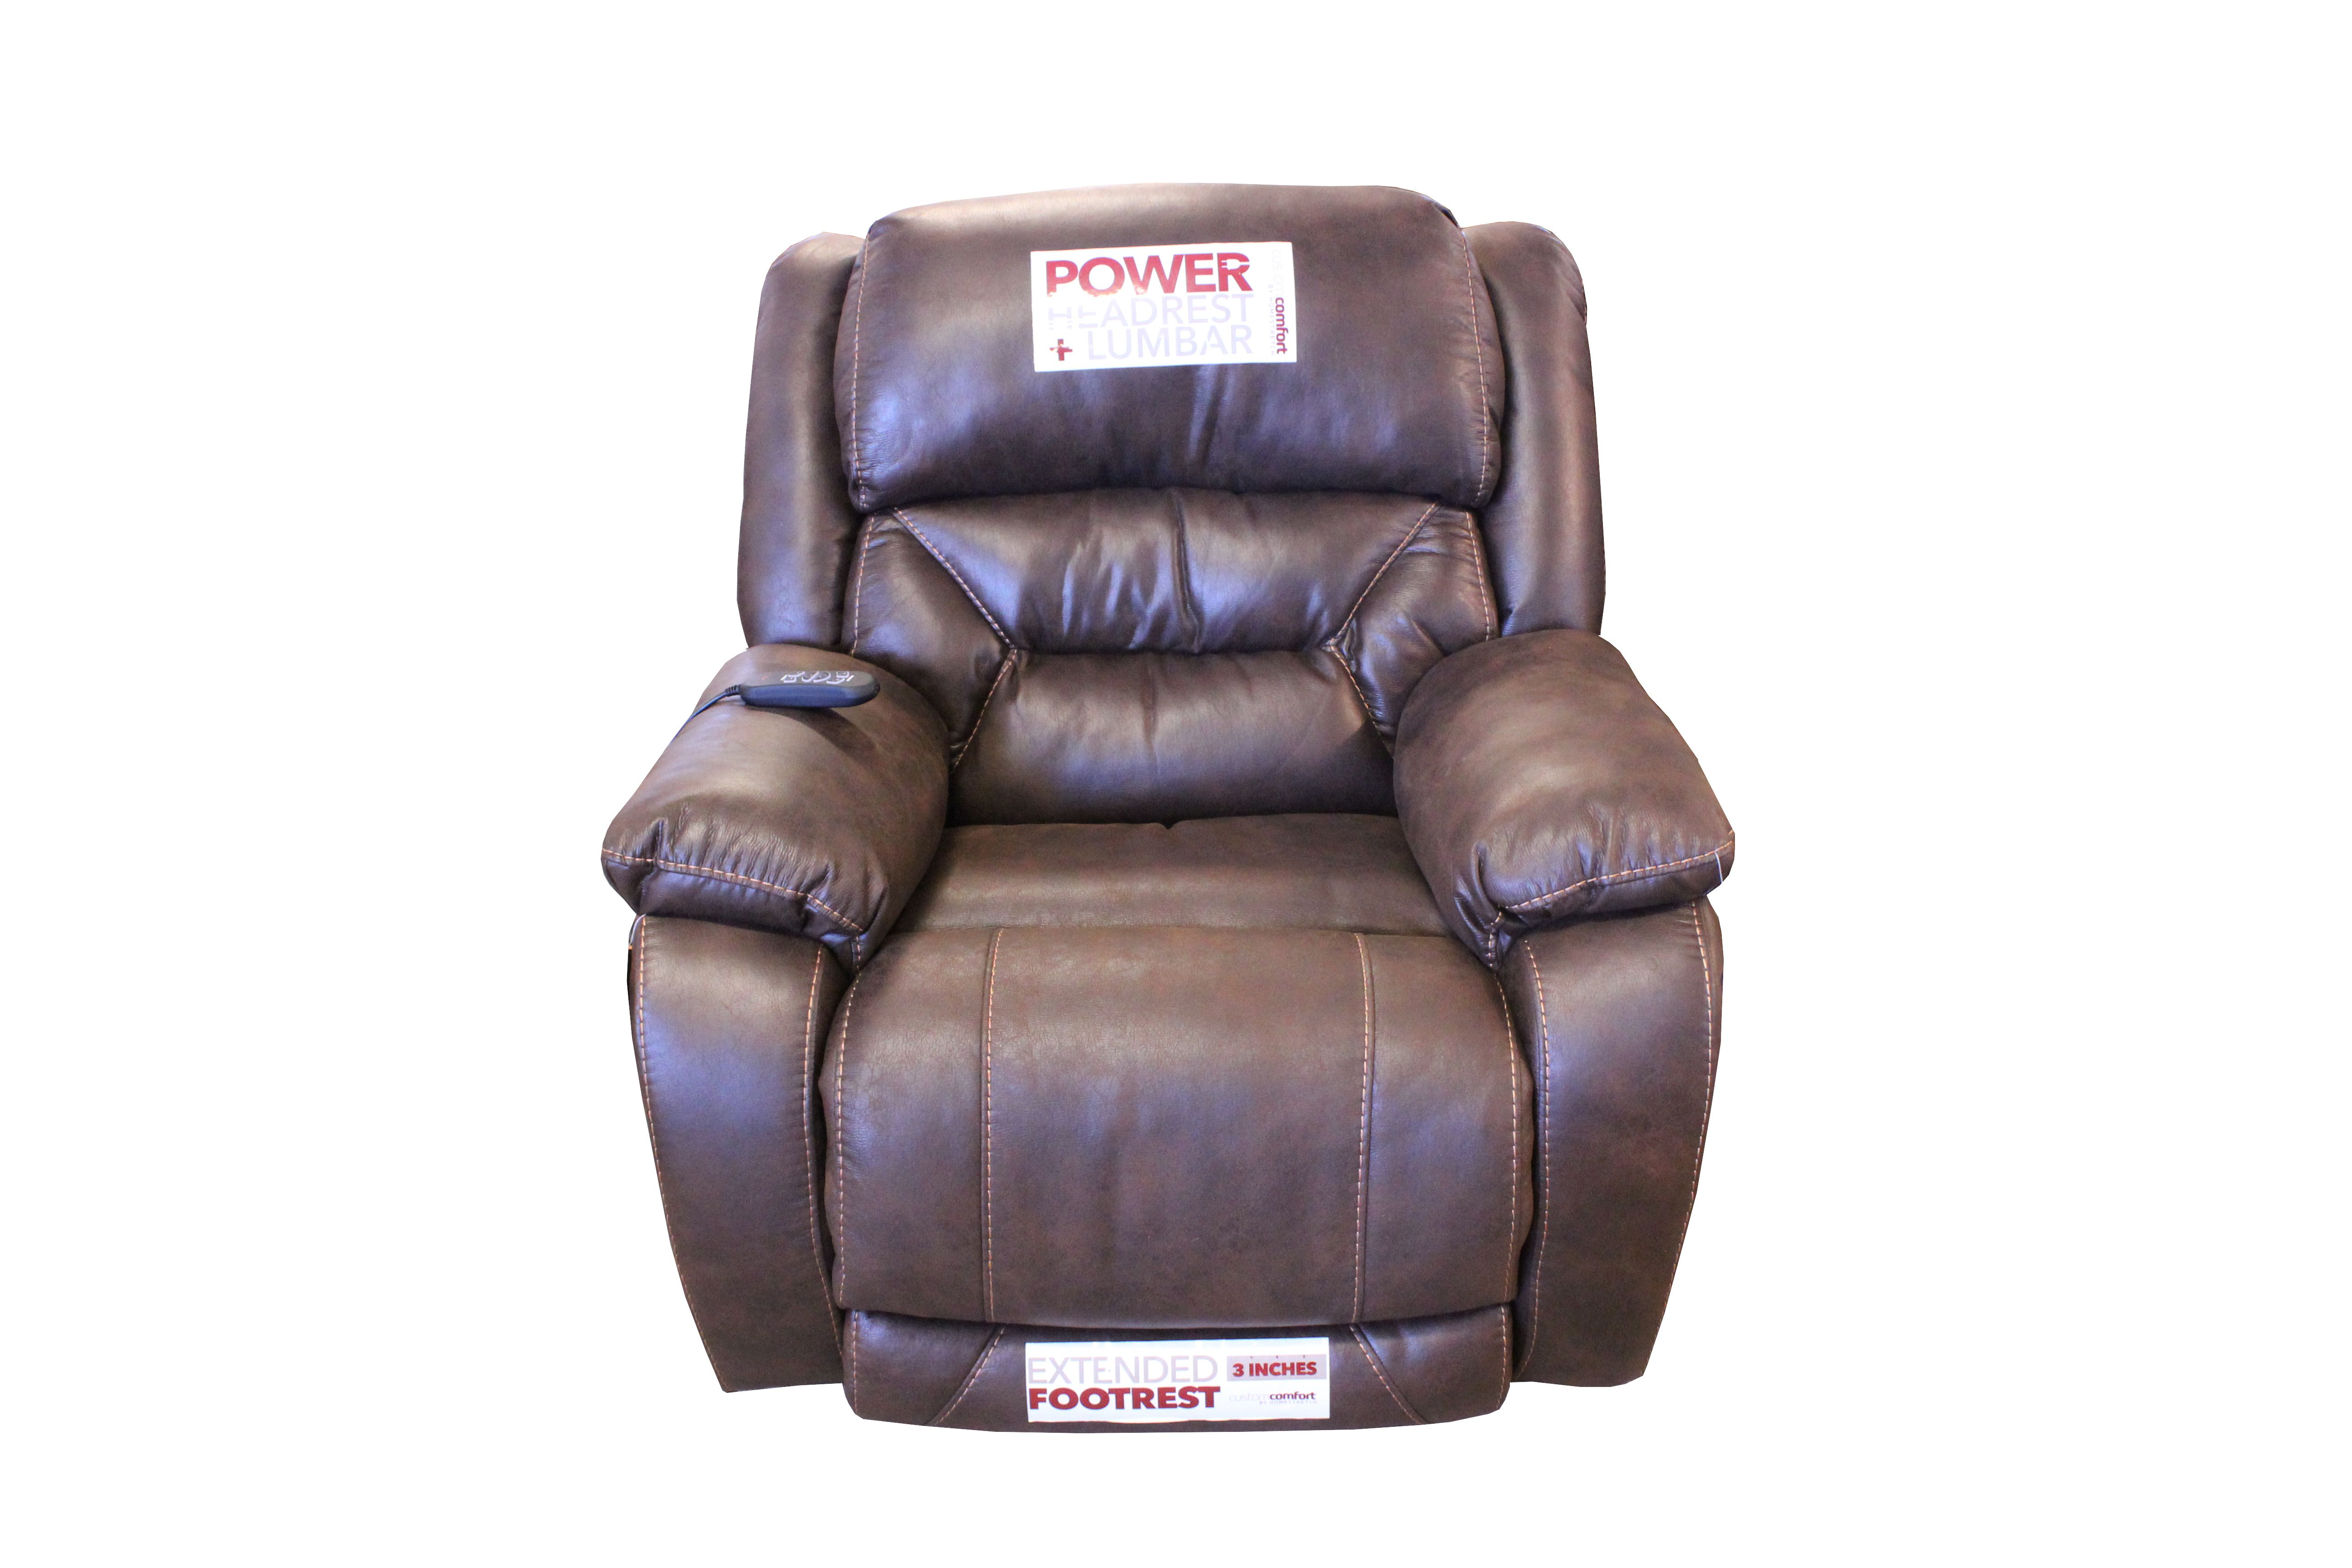 Homestretch Power Recliner